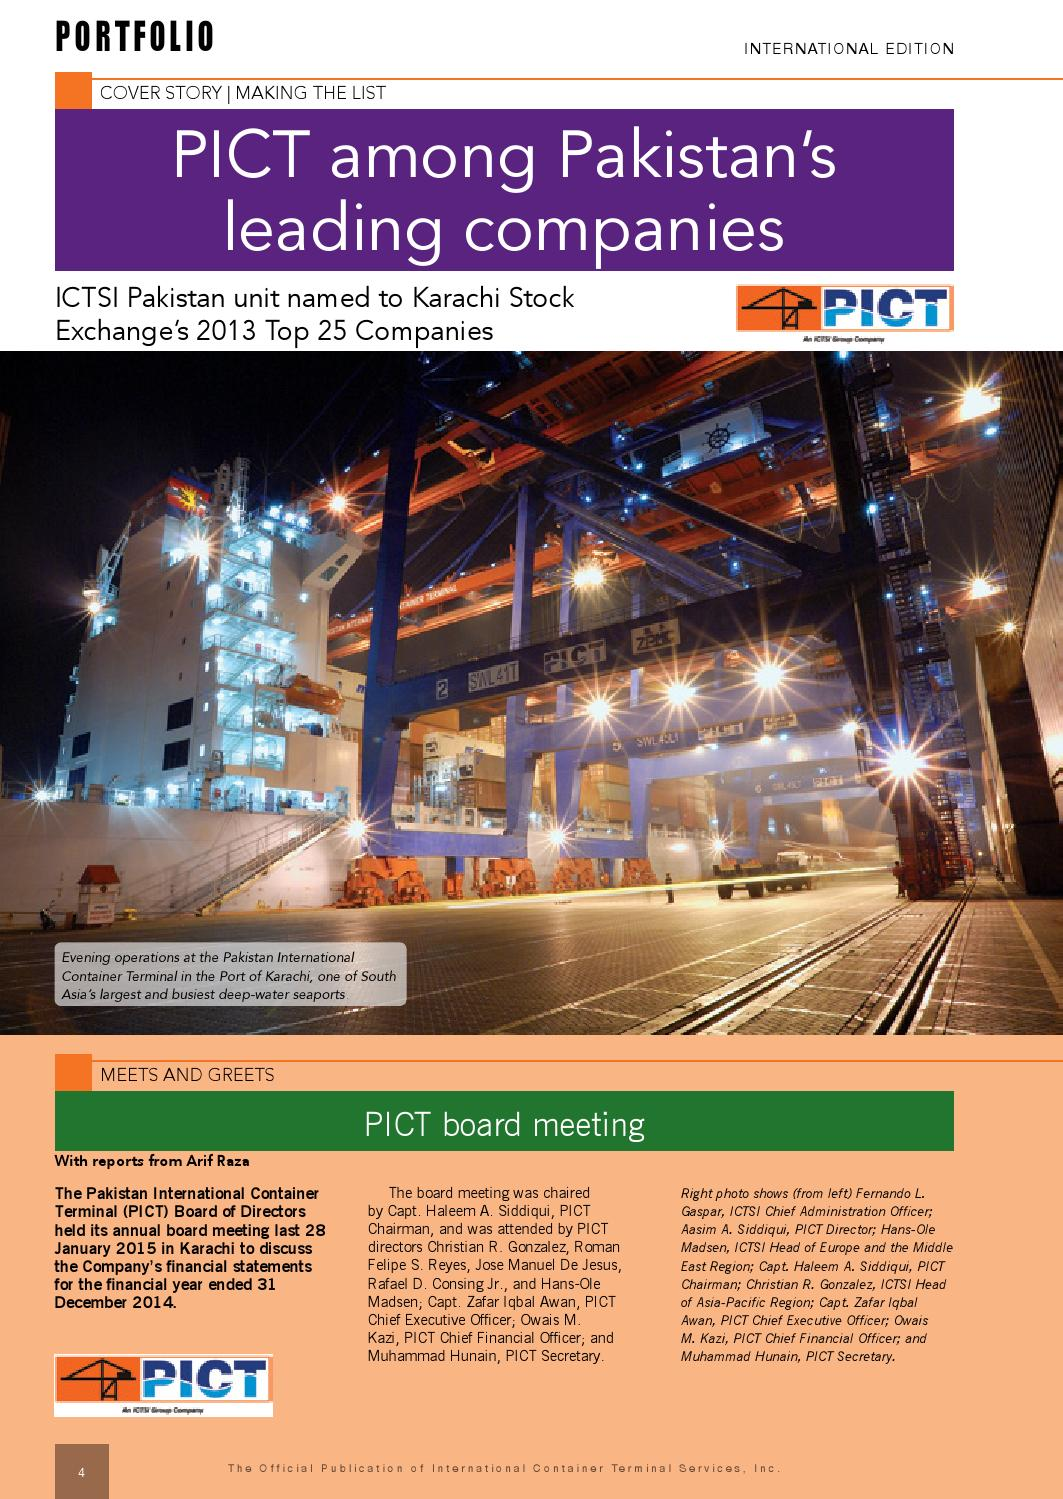 March 2015 portfolio international edition by ICTSI PRO - issuu